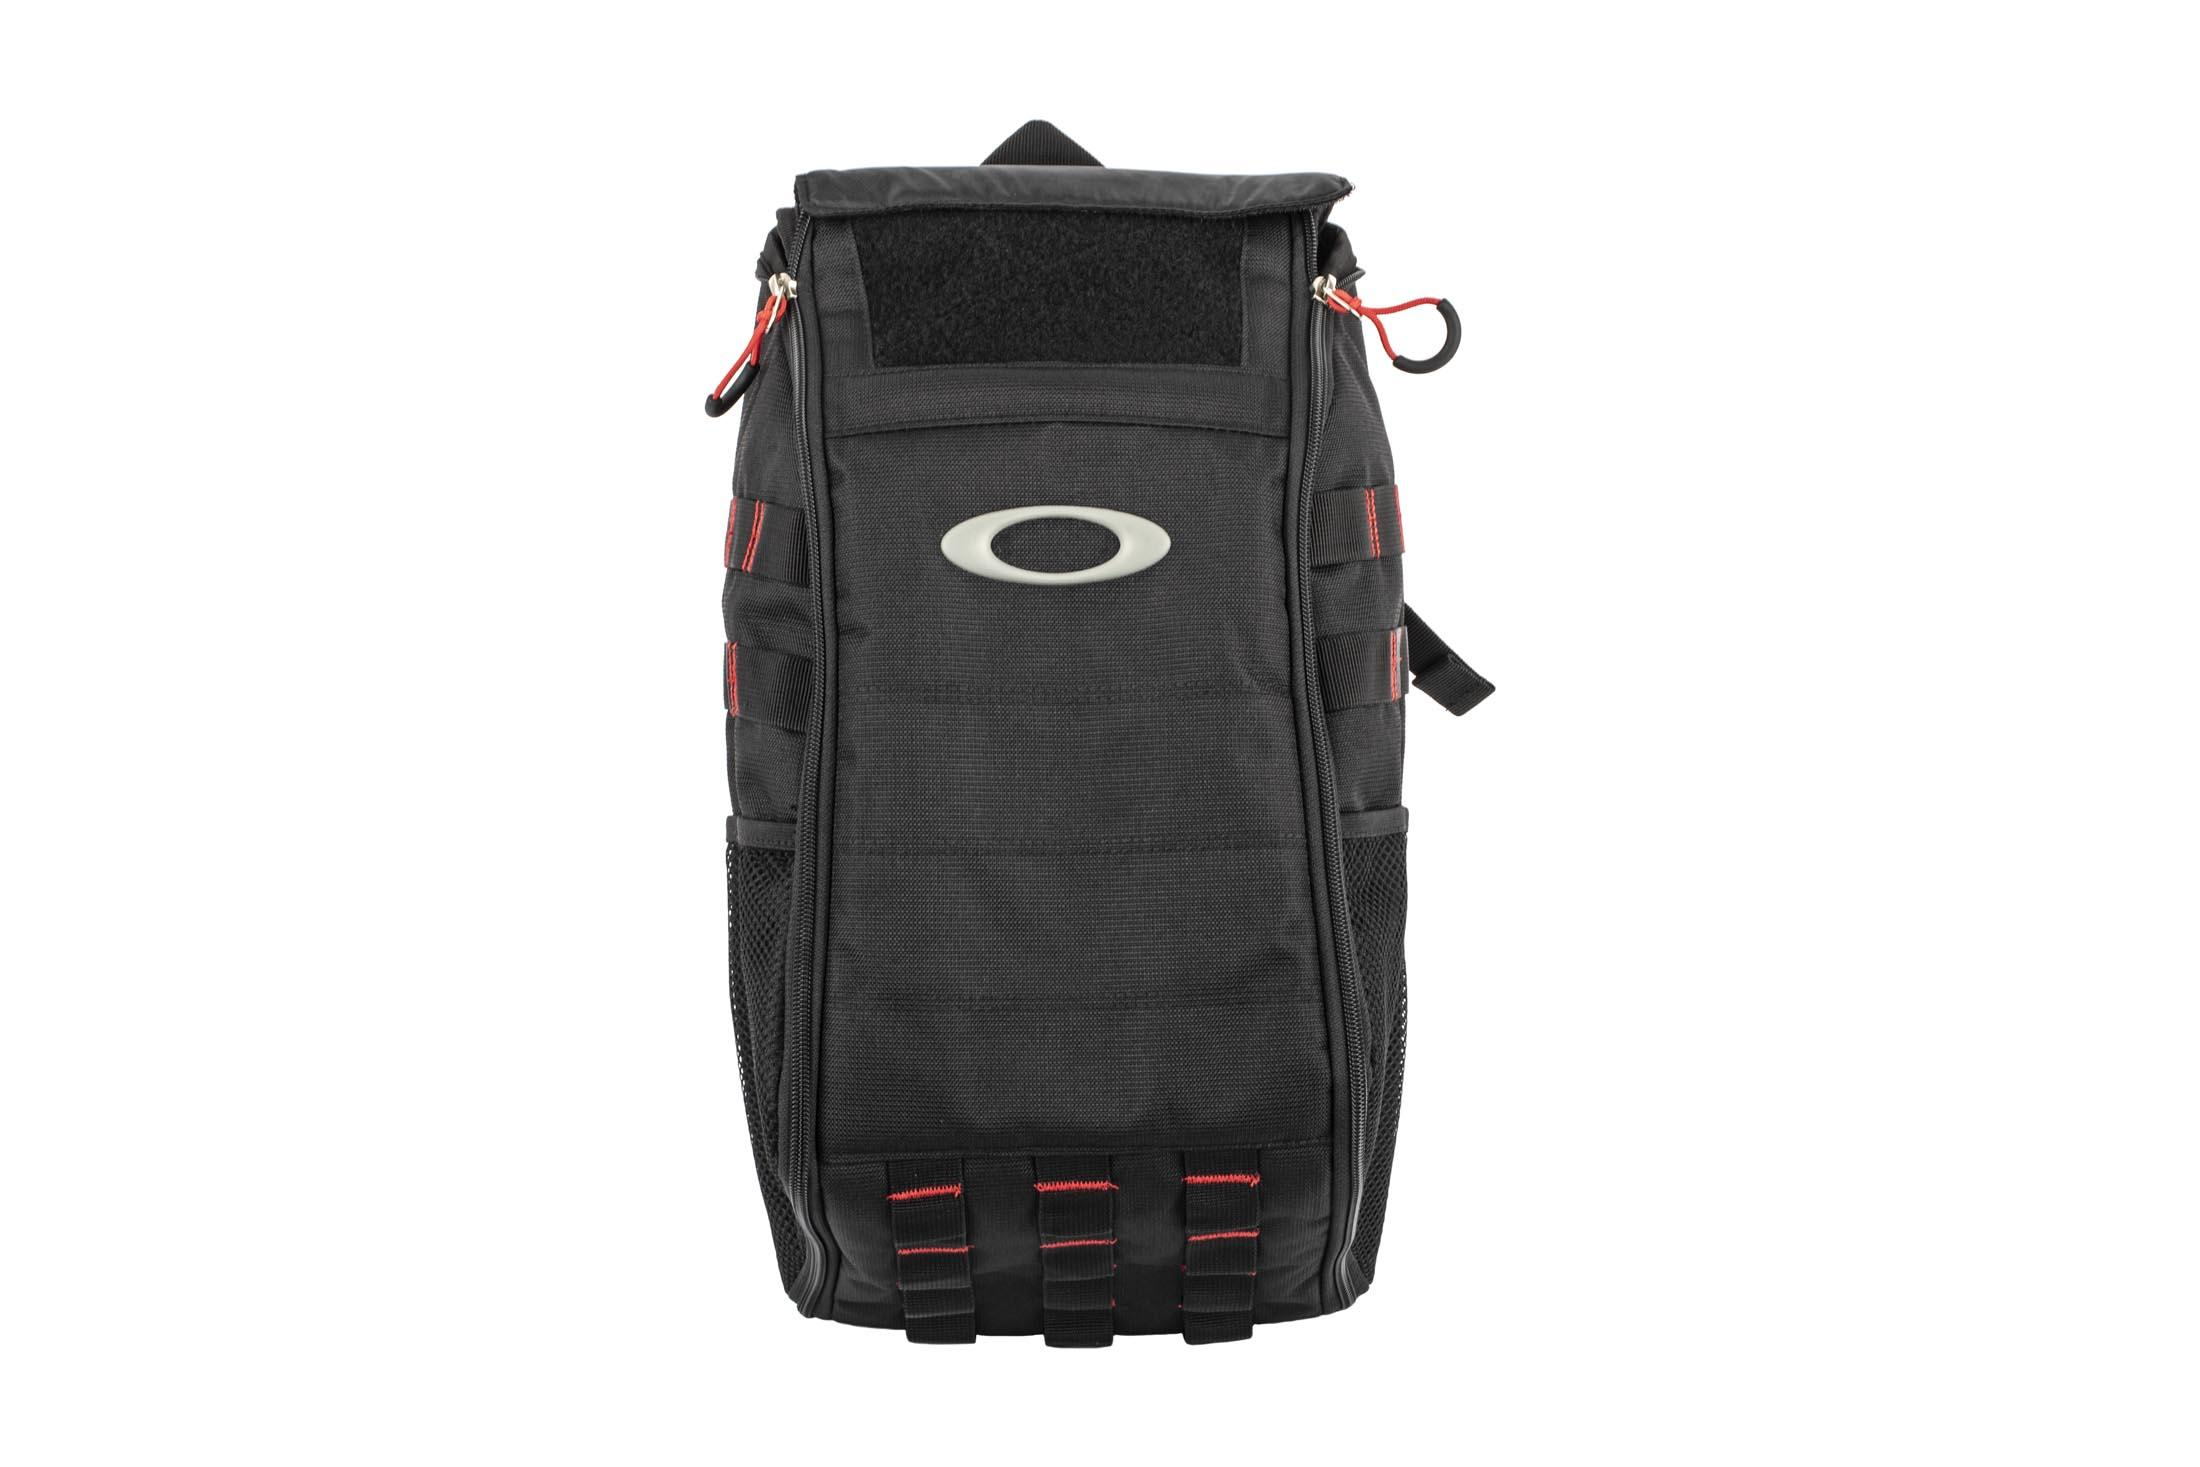 983c33647b900 ... The Oakley Extractor Sling Bag is the perfect EDC bag for the commuter  on the go ...